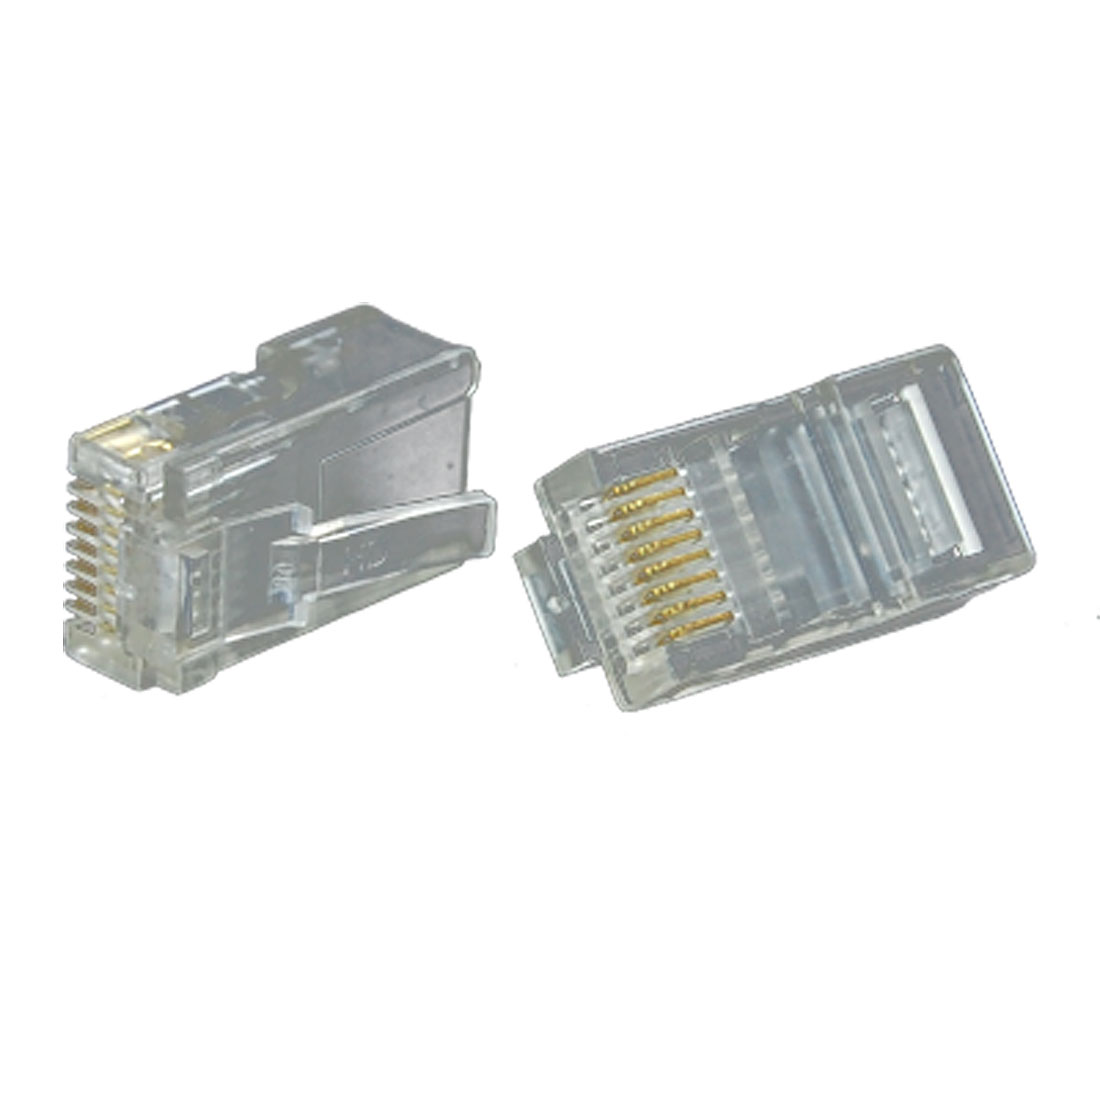 Clear Network Modular Connector Plug 8P8C Cat5 RJ 45 4pcs